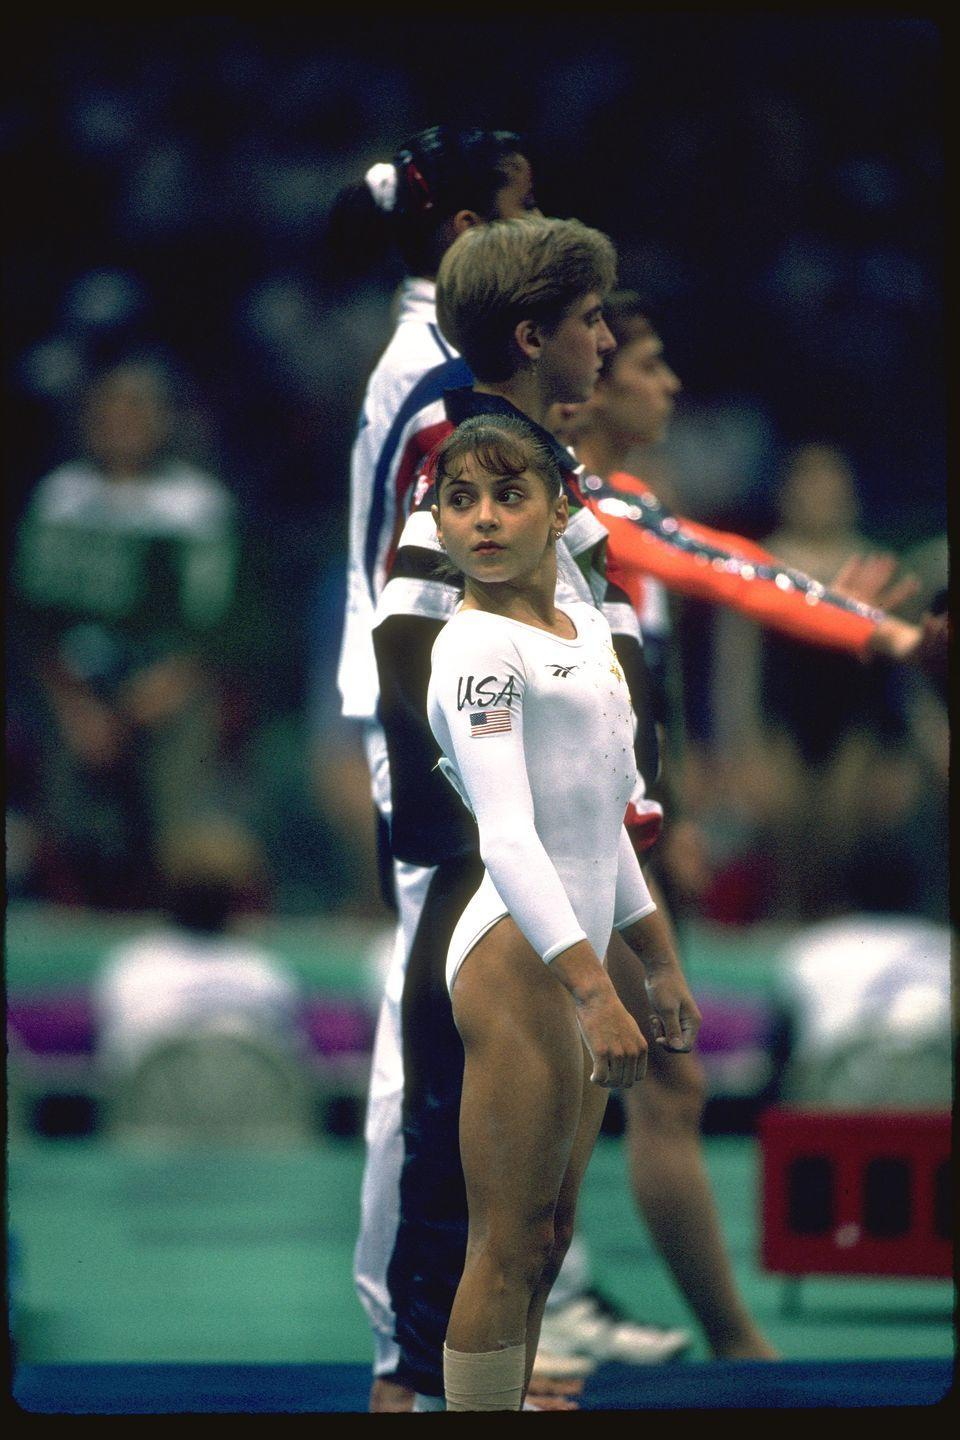 <p>Dominique Moceanu competed in the 1996 Atlanta Olympic Games on the Magnificent Seven and at just 14 years old, she became the youngest Olympic competitor to win a gold medal. </p>